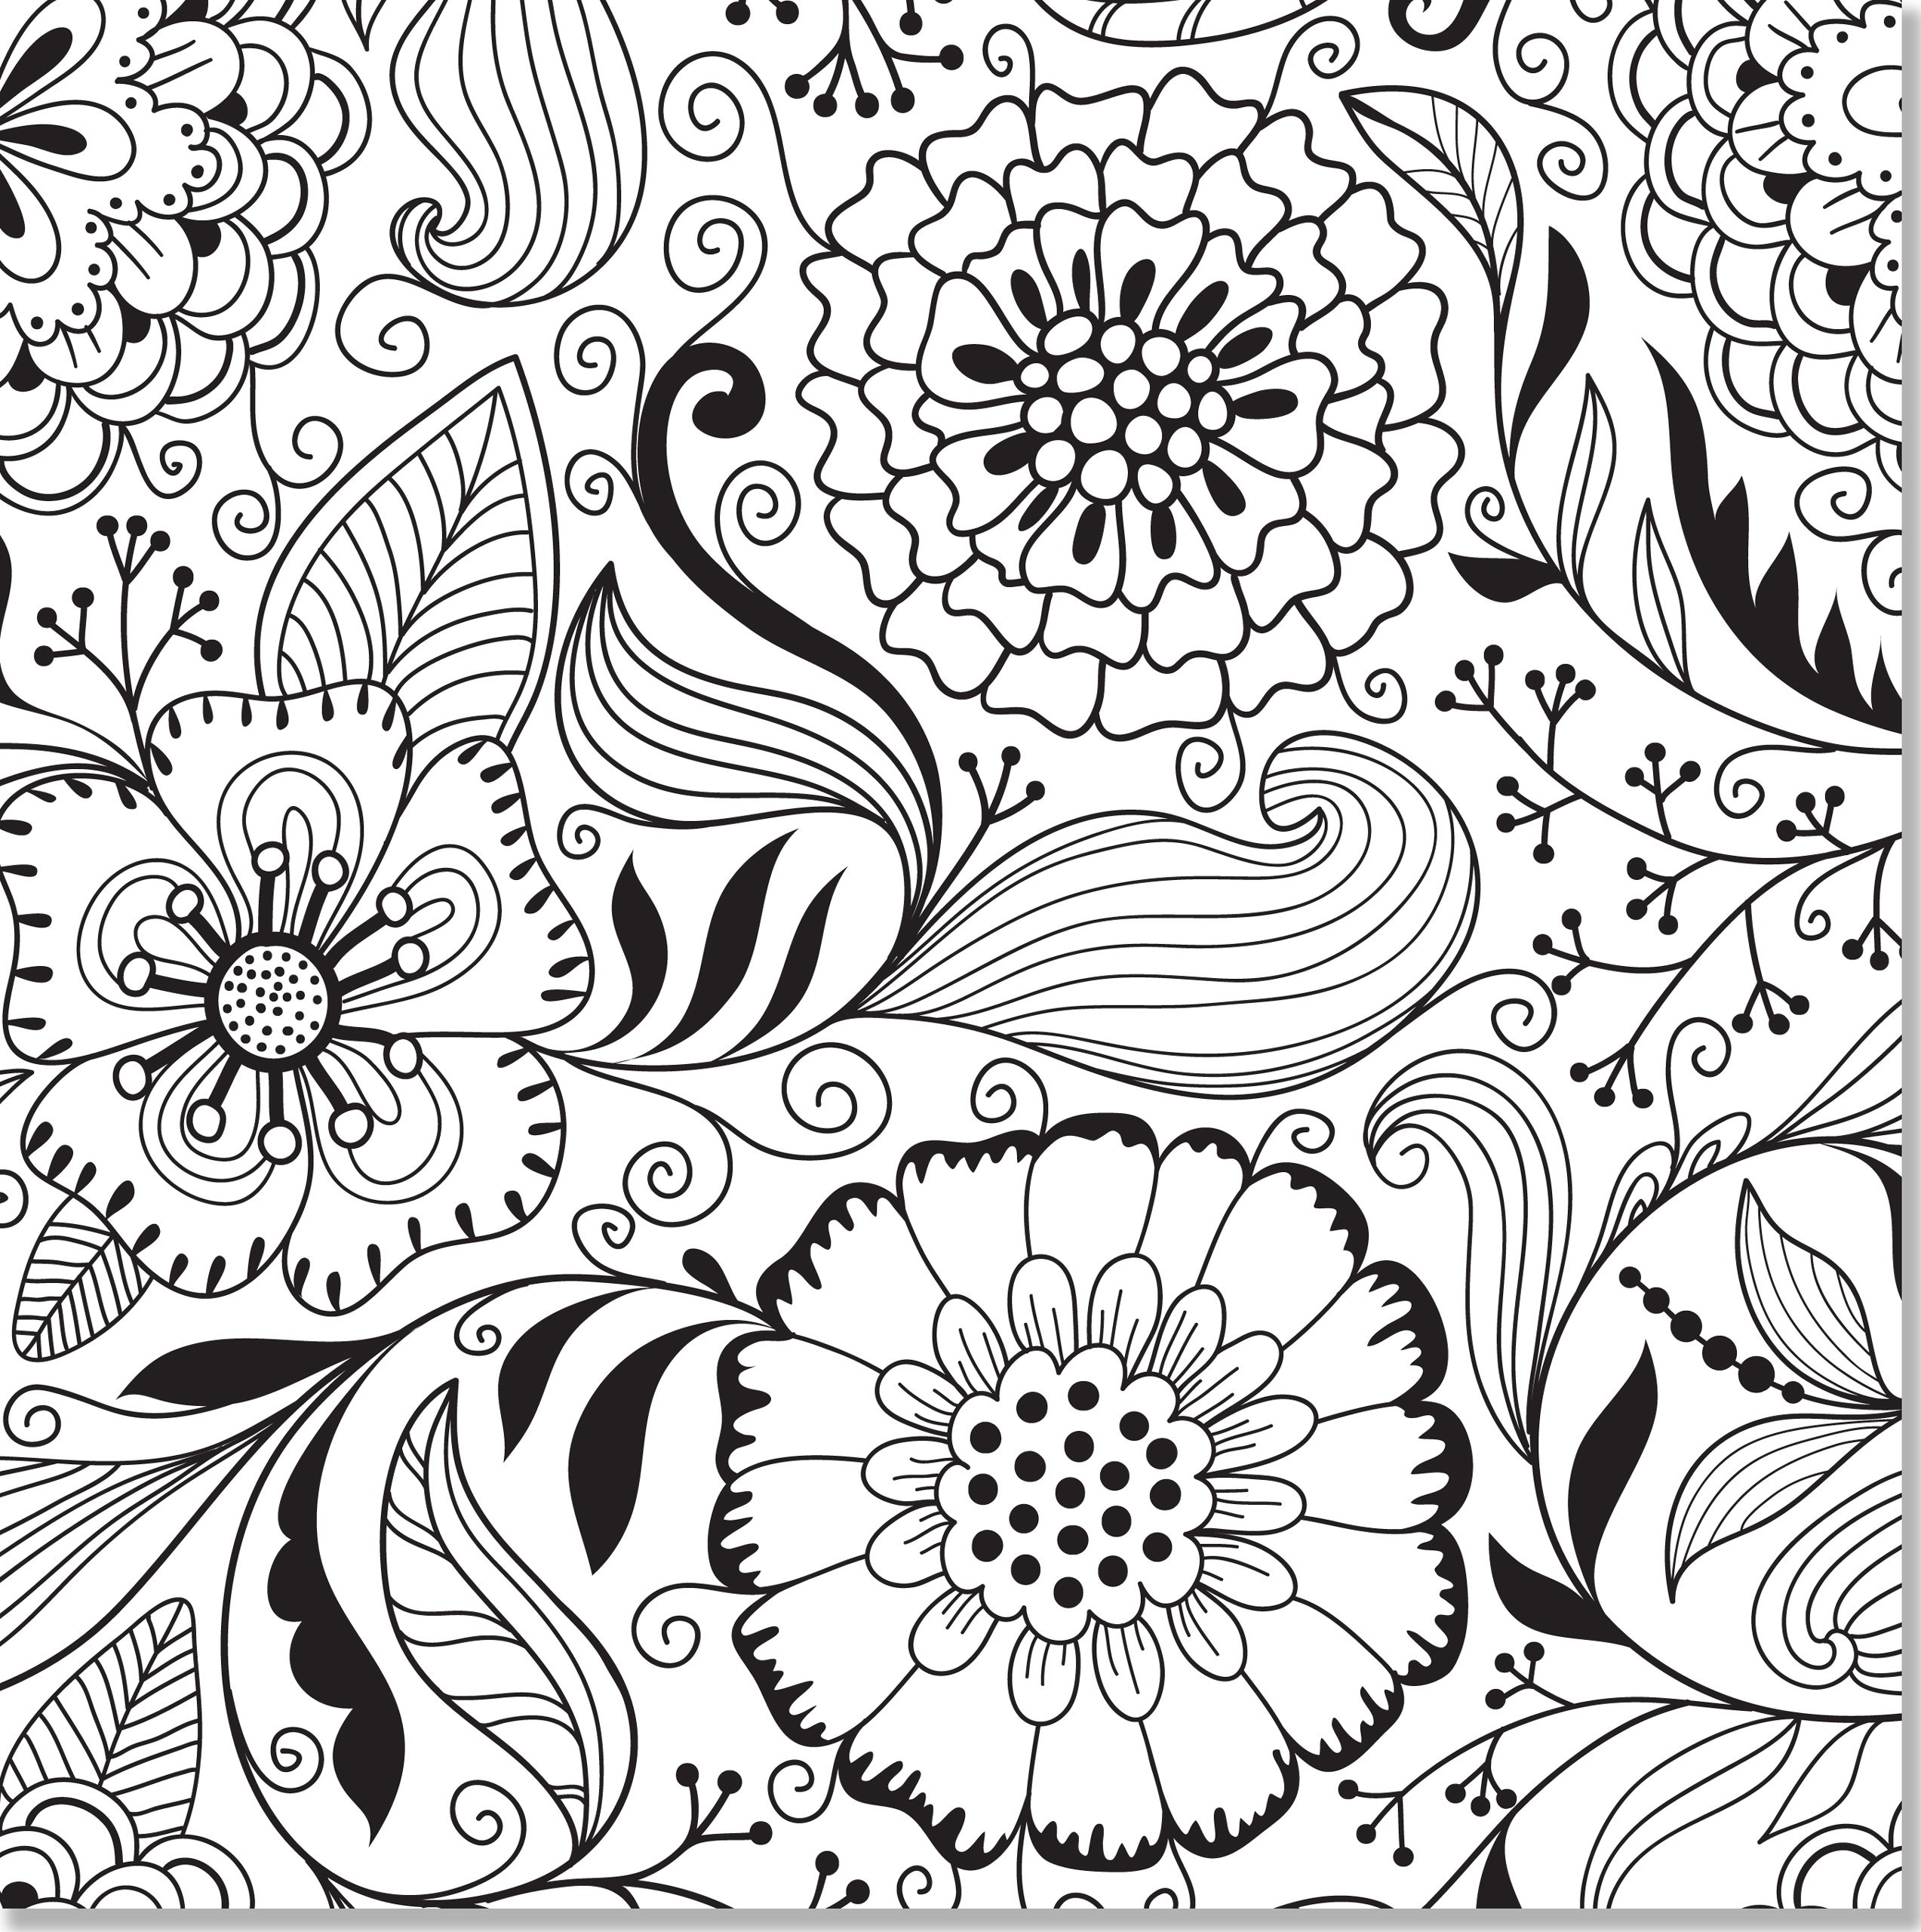 Amazon.com: Floral Designs Adult Coloring Book (31 stress-relieving ...